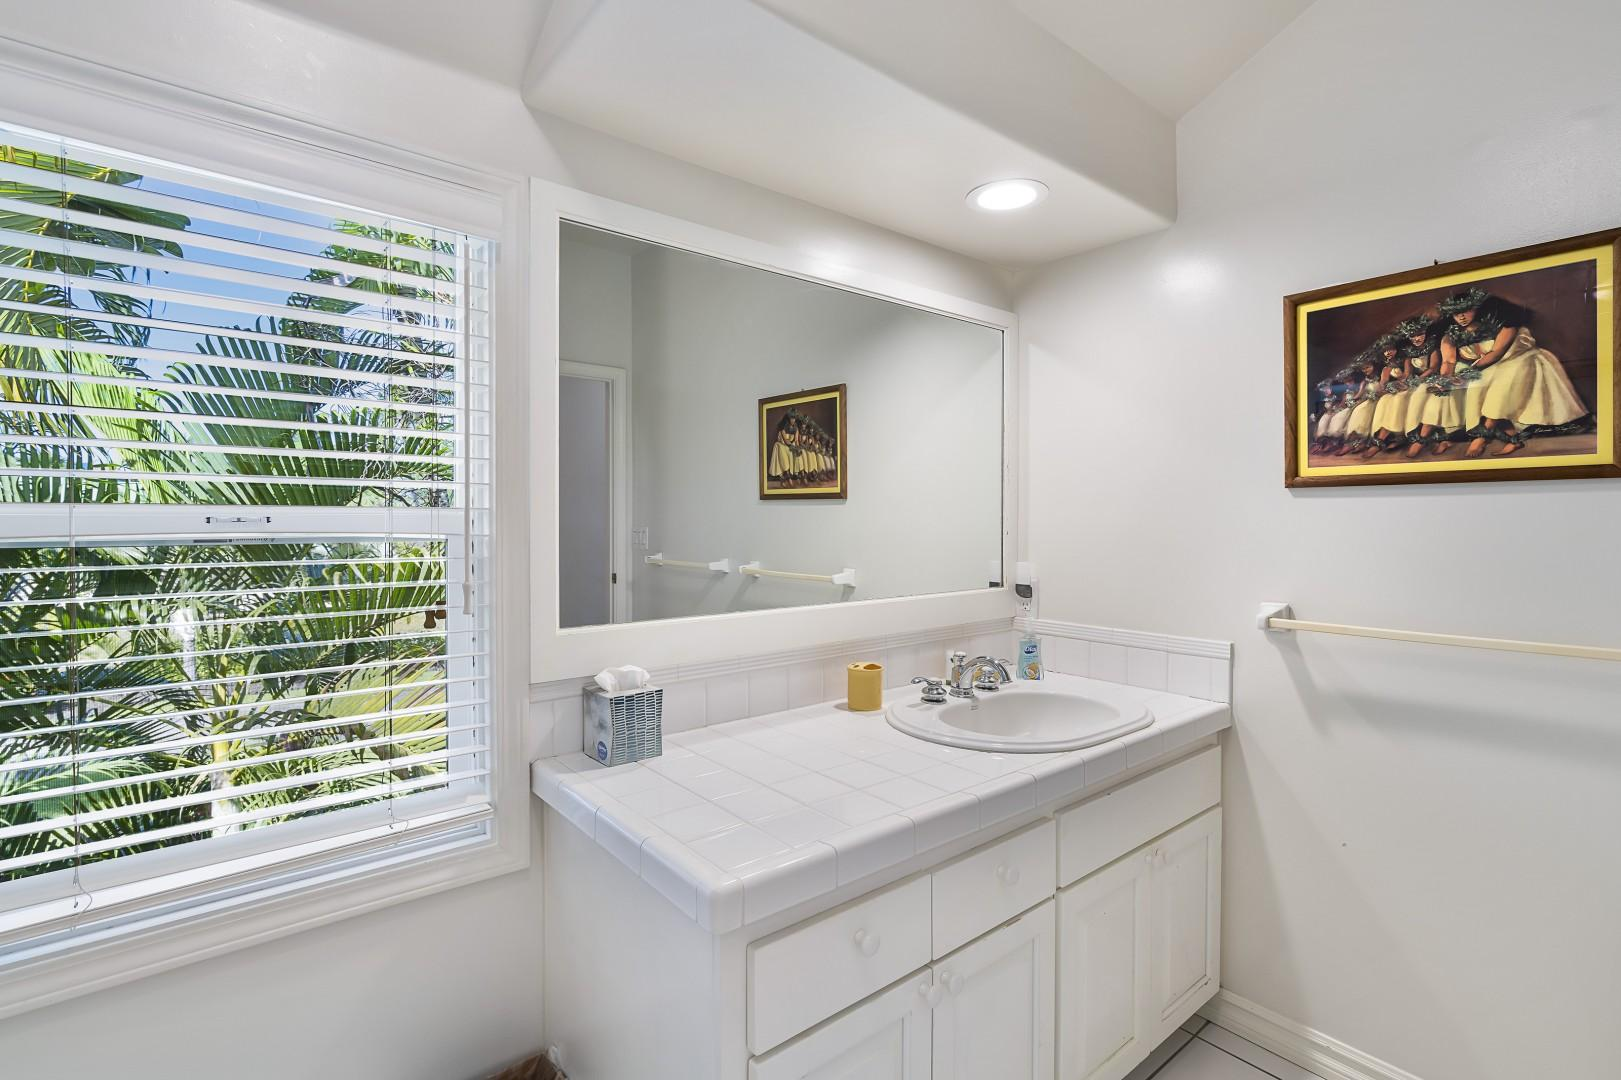 Share bathroom which features dual sinks